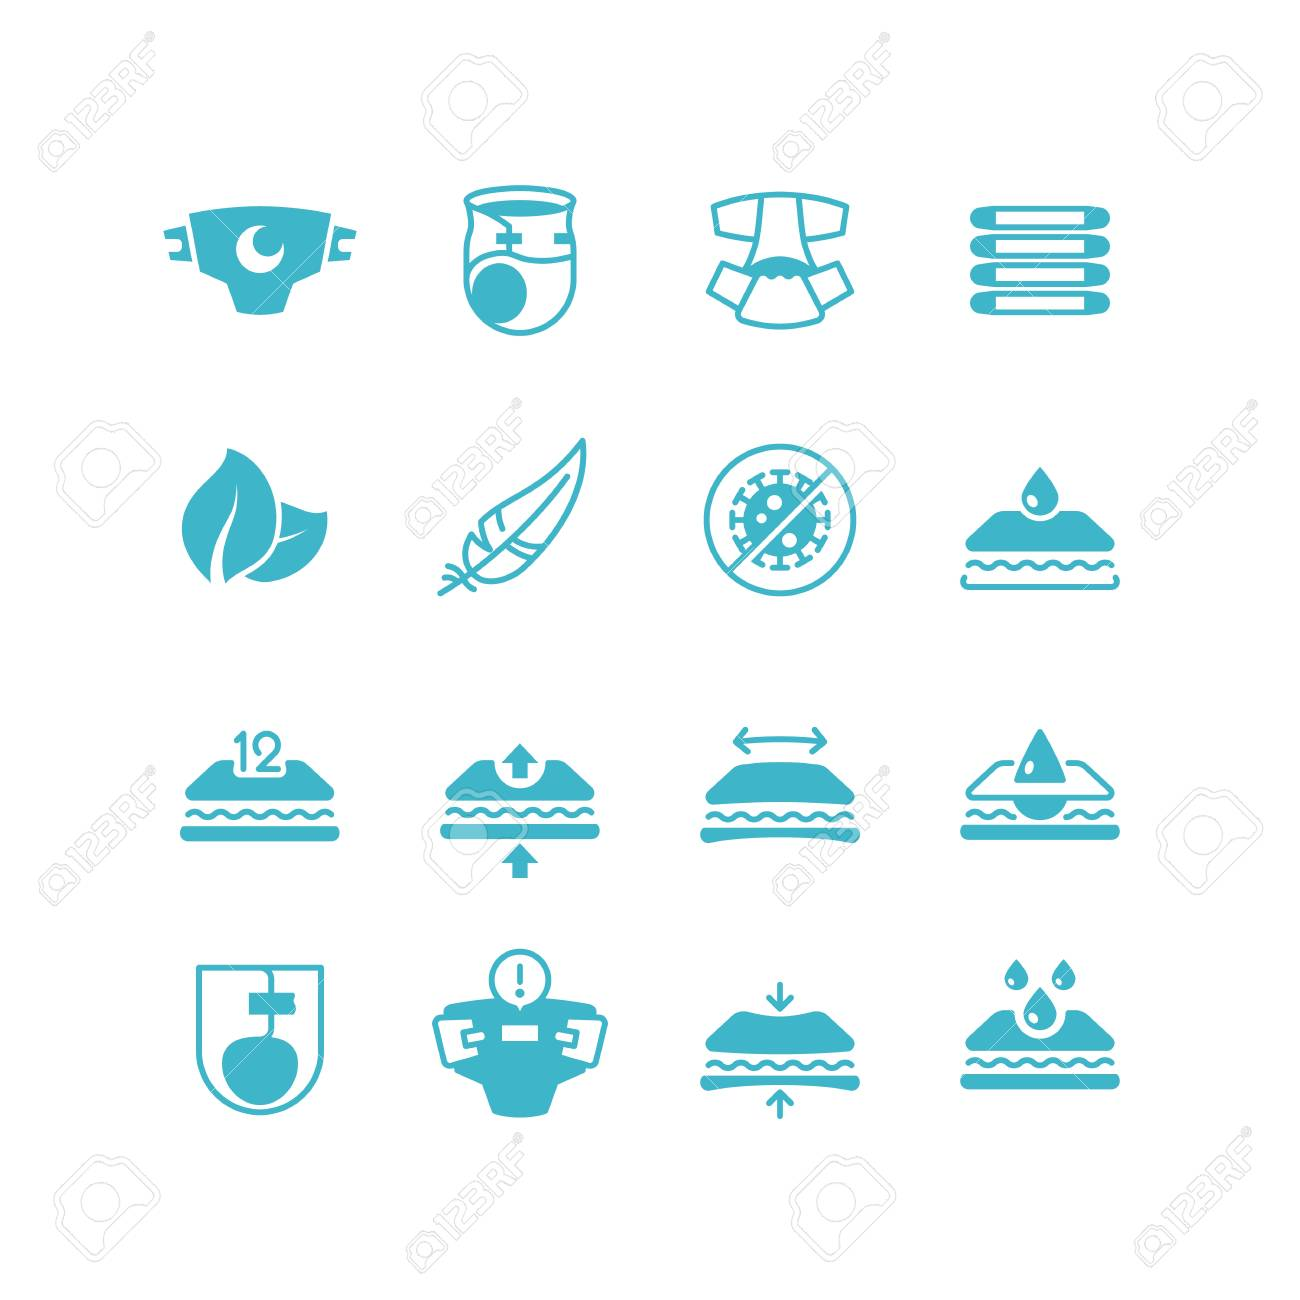 Baby diaper production characteristics icons. Soft, dry, stretch, breathable nappy with absorber vector symbols - 102791152